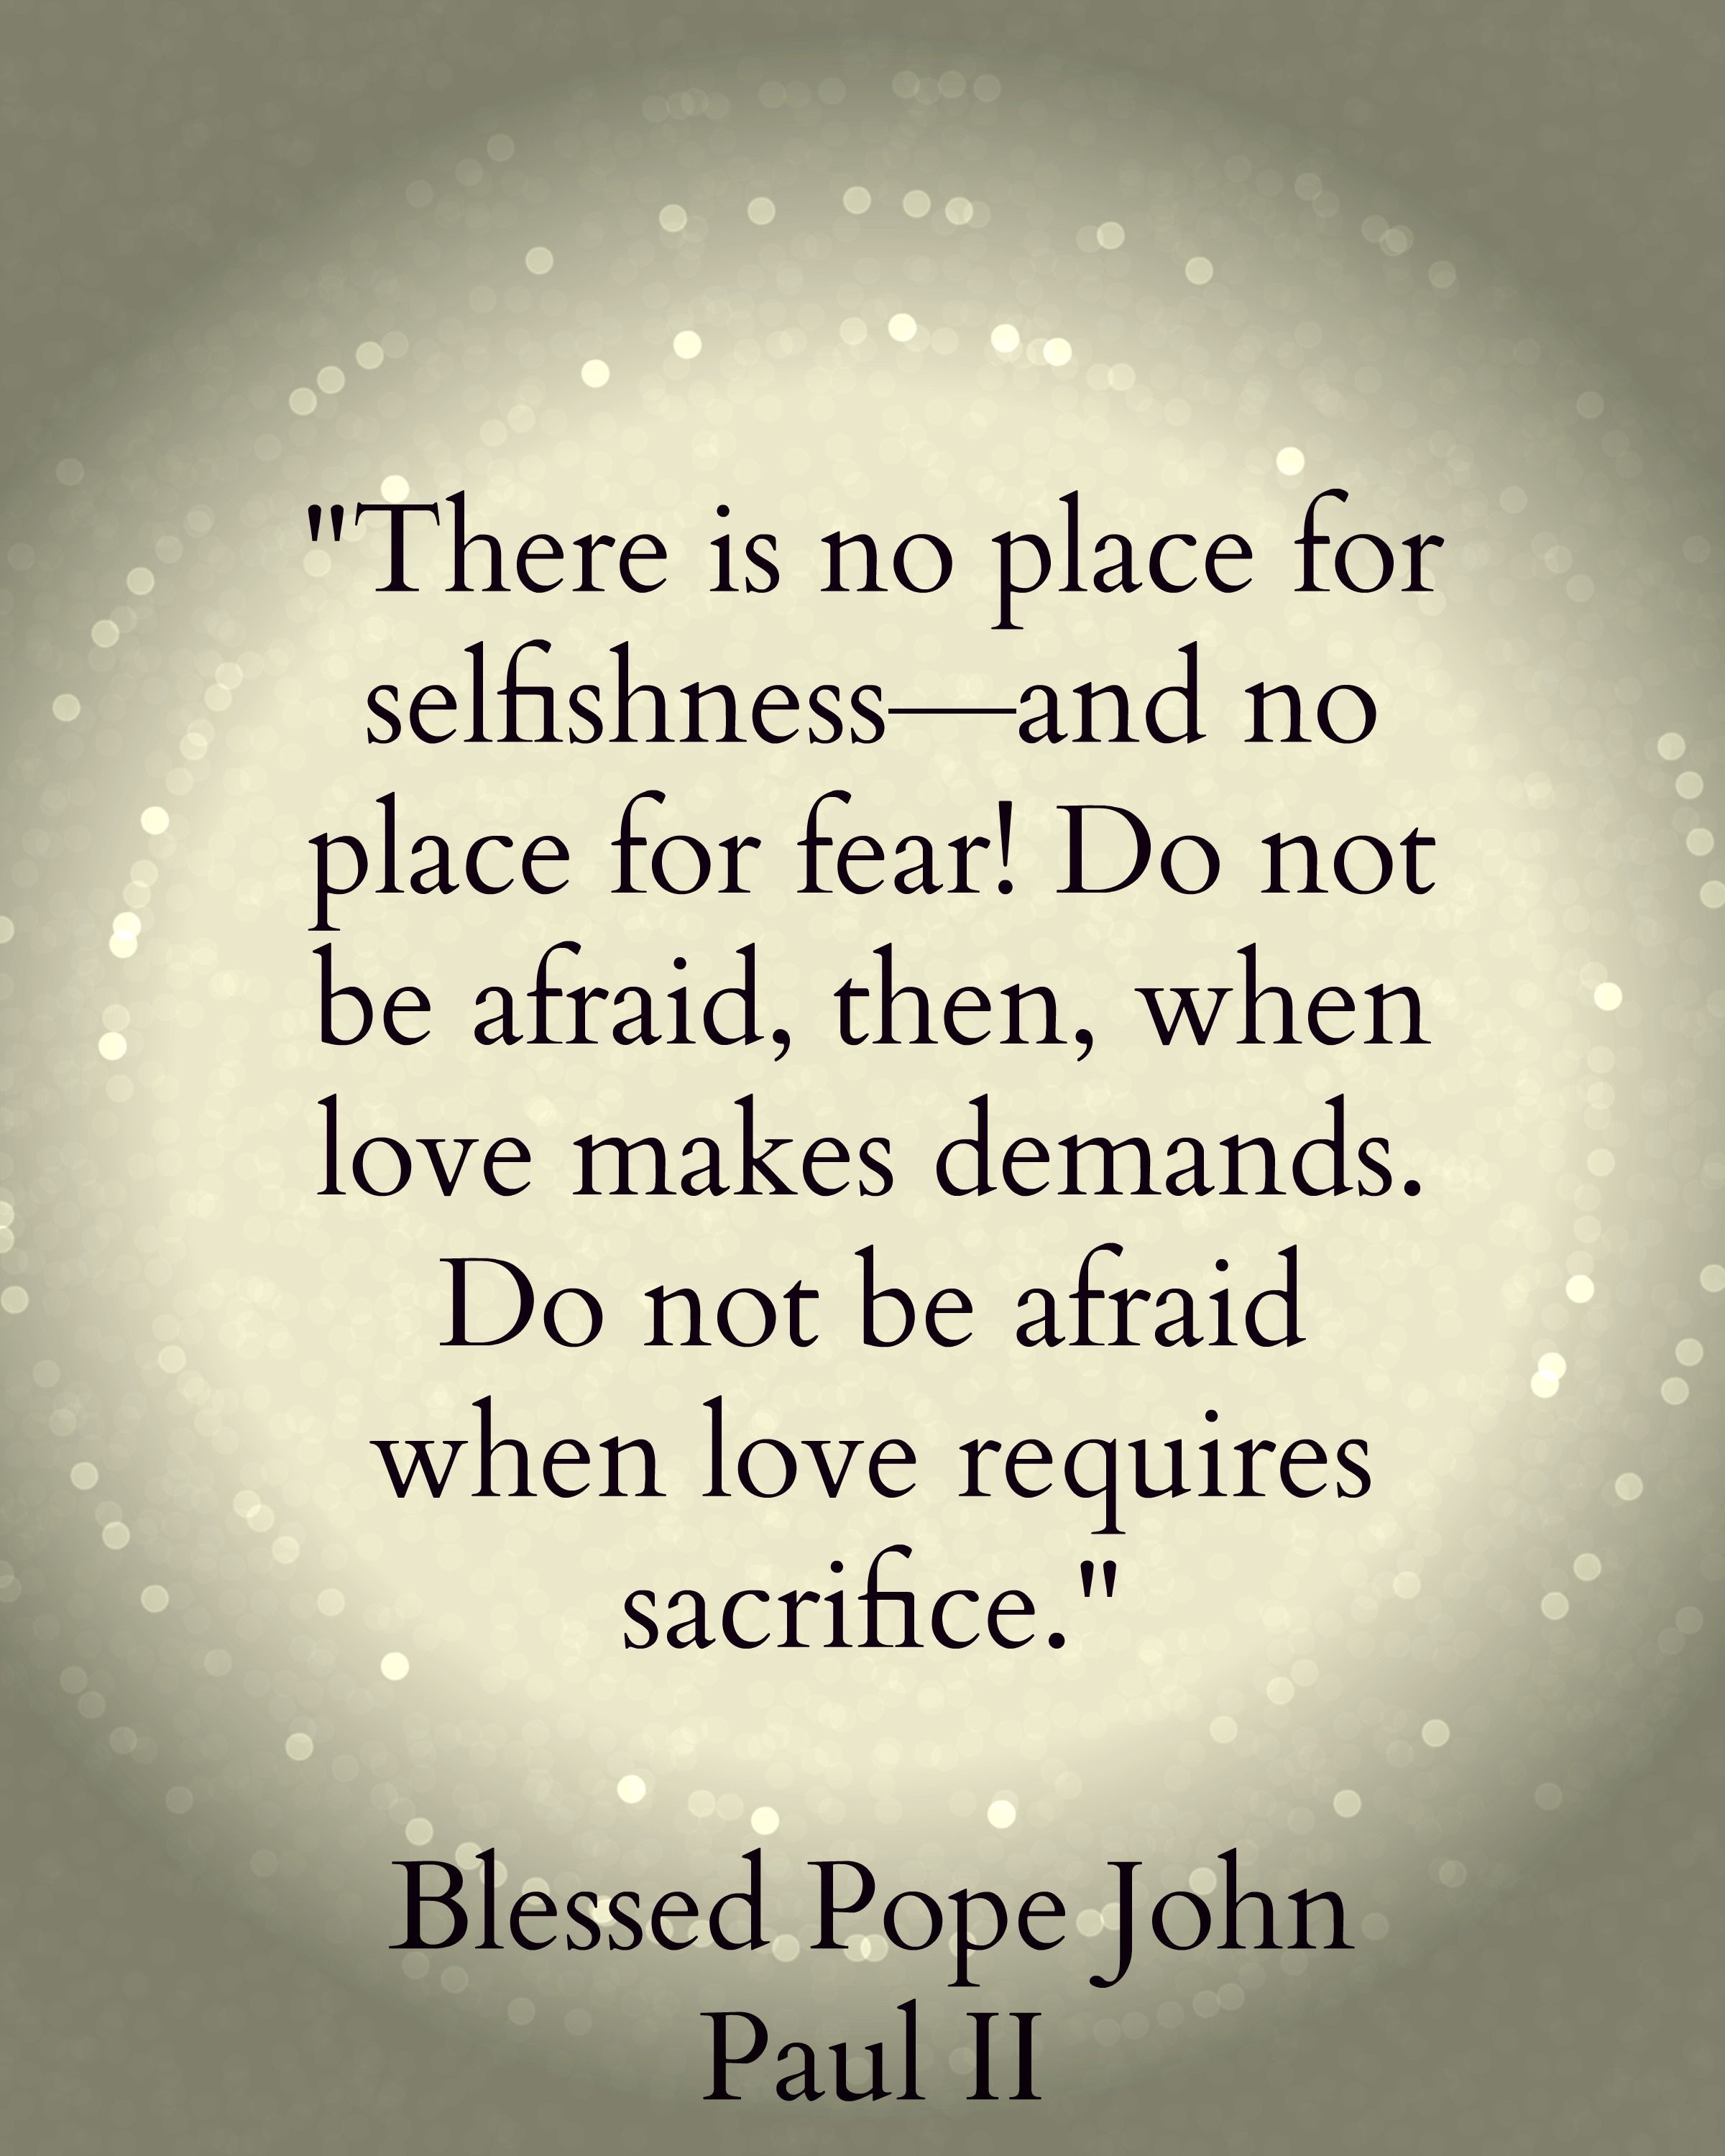 Catholic Quotes On Love There Is No Place For Selfishness  And No Place For Fear Do Not